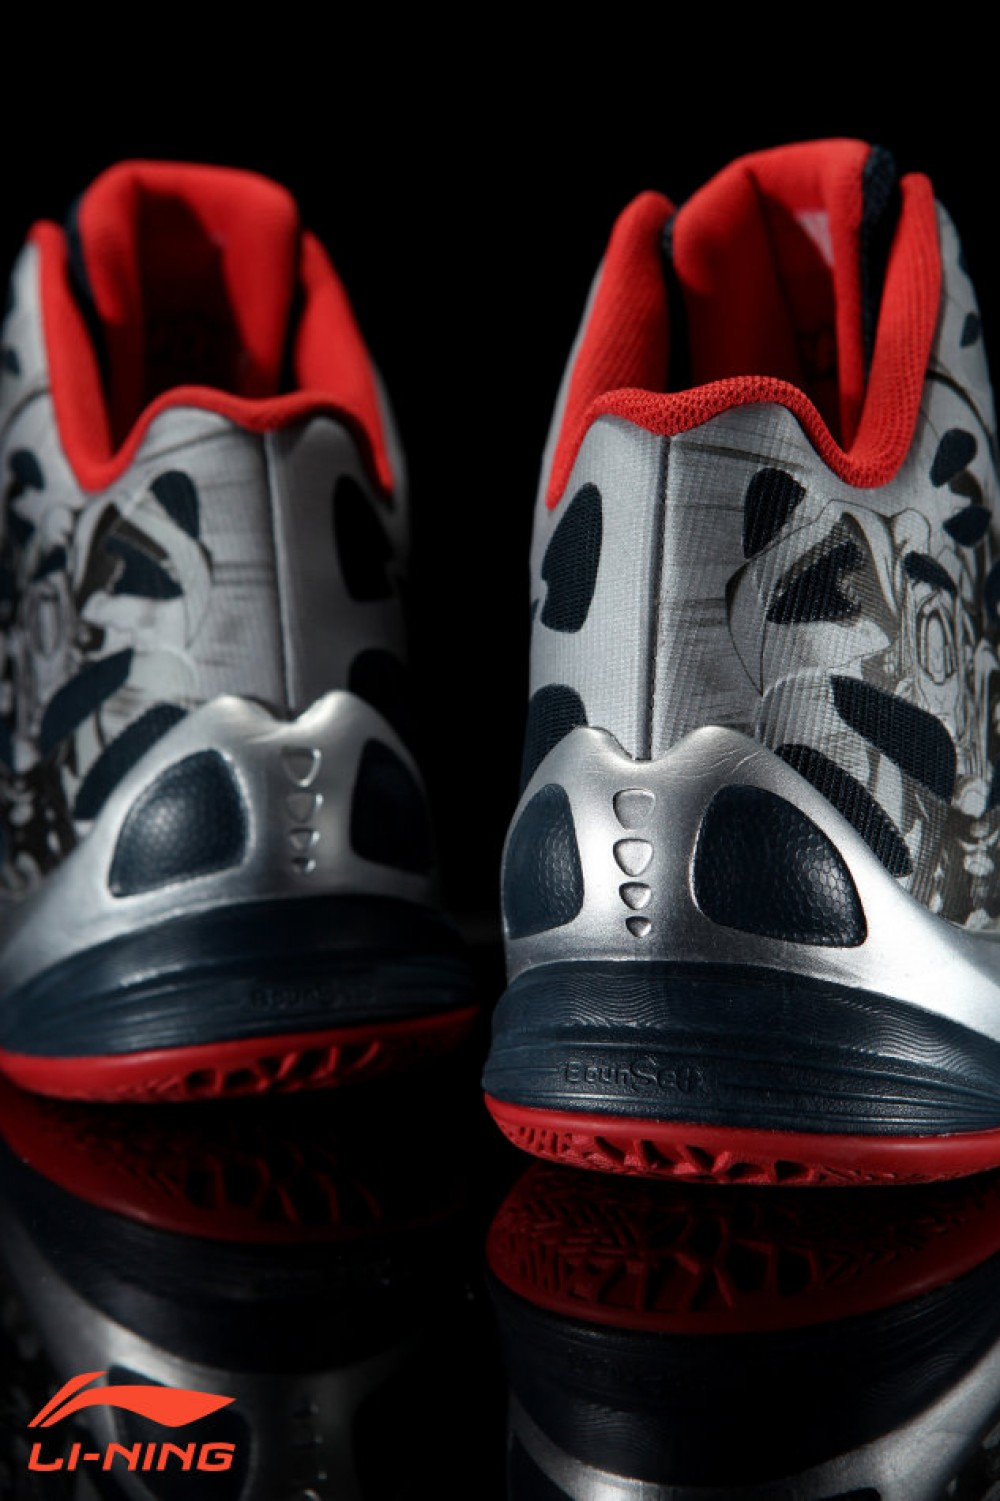 Thor x Li-Ning BB Sonic Lite Basketball Shoes